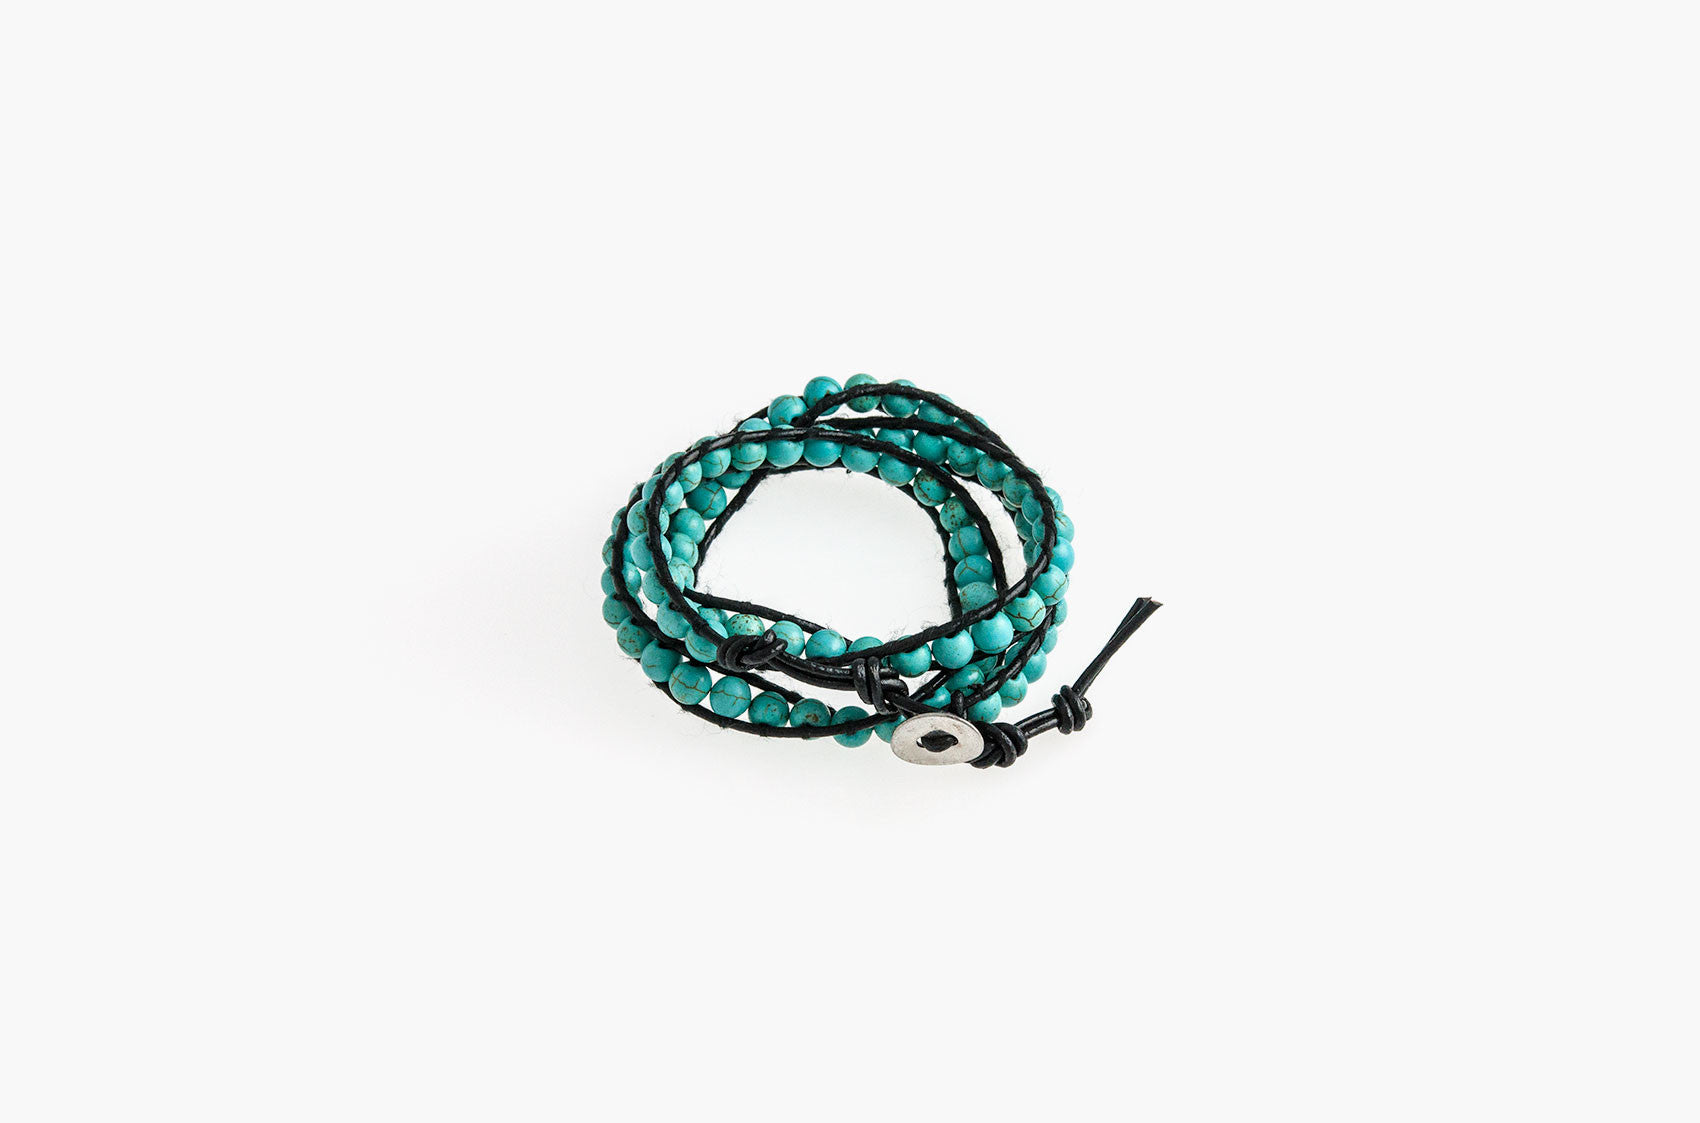 Turquoise wrap bracelet with black leather